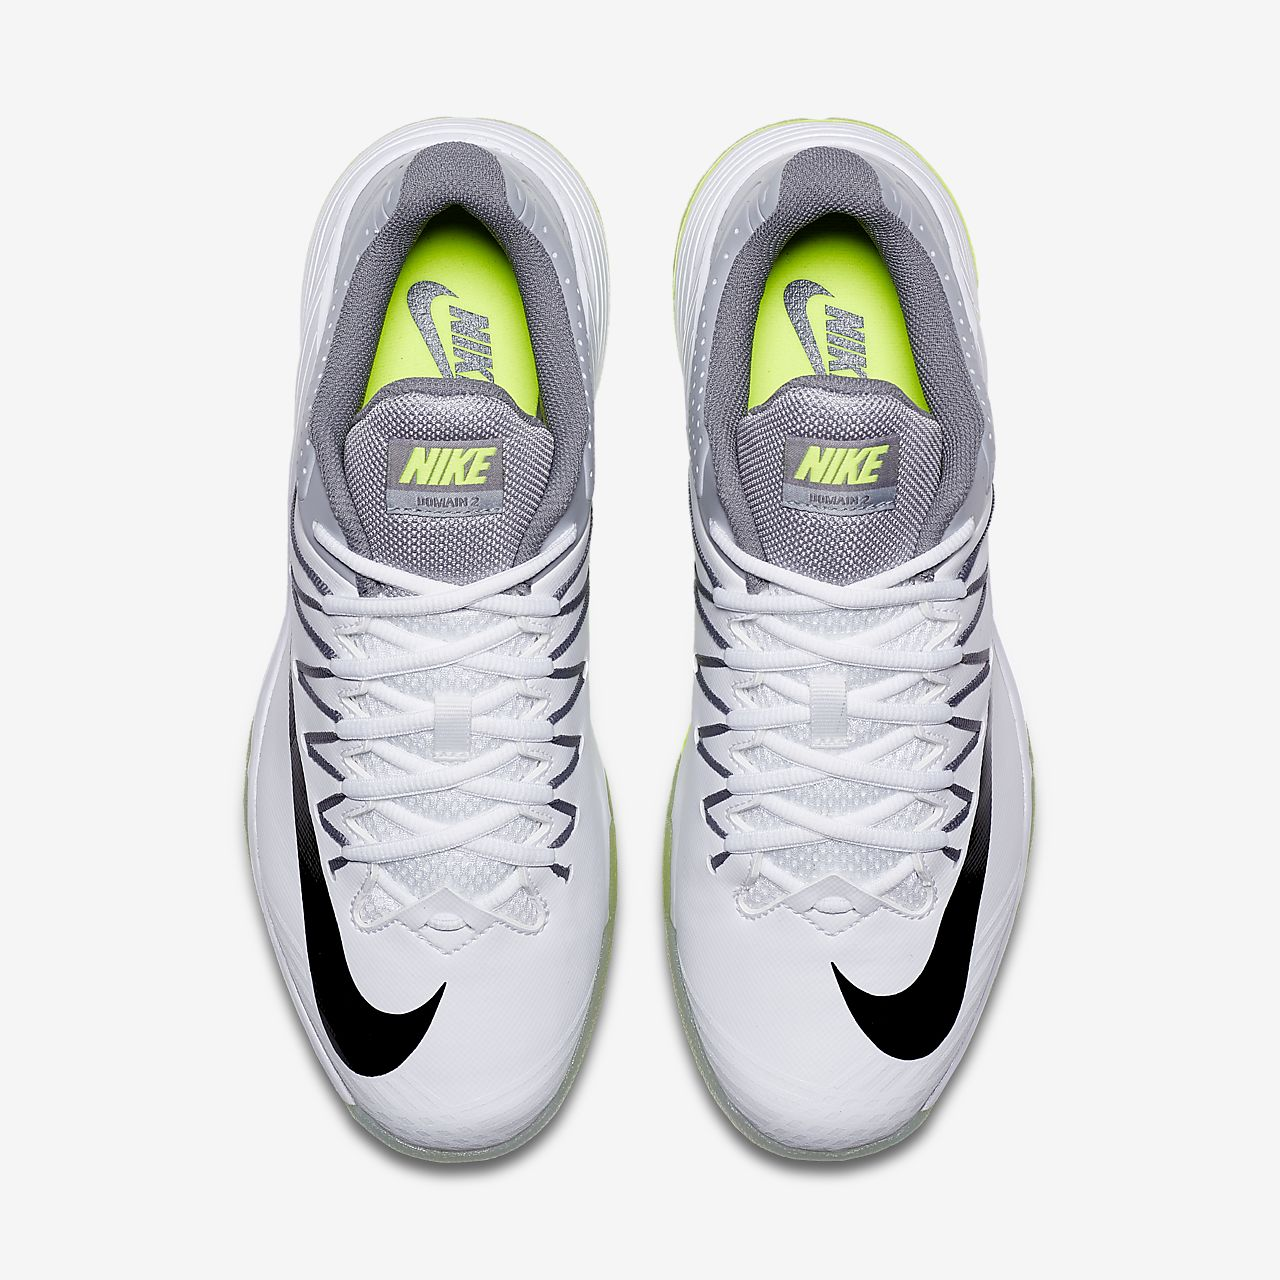 ddcdd71bf4a Nike Domain 2 Unisex Cricket Shoe. Nike.com IN